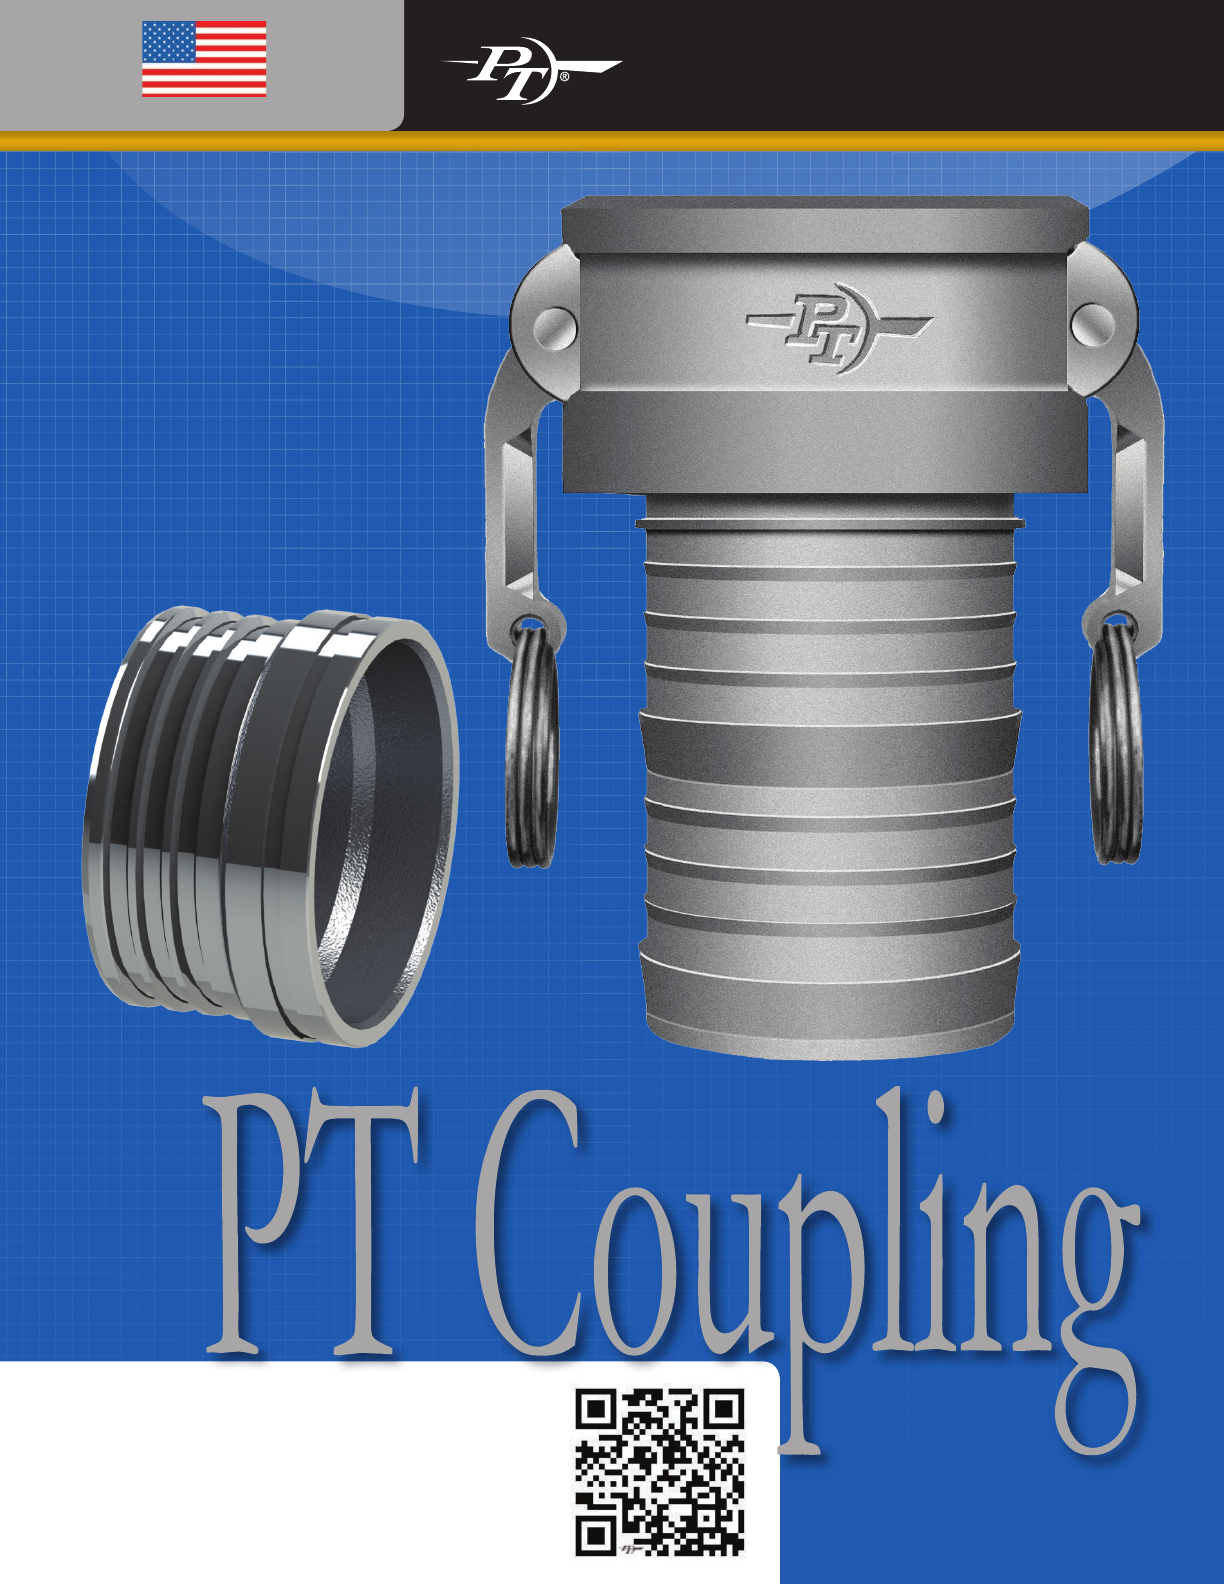 1-1//2 Hose Shank x NPT Male Combination Nipple PT Coupling PTCN Series Polypropylene Fitting